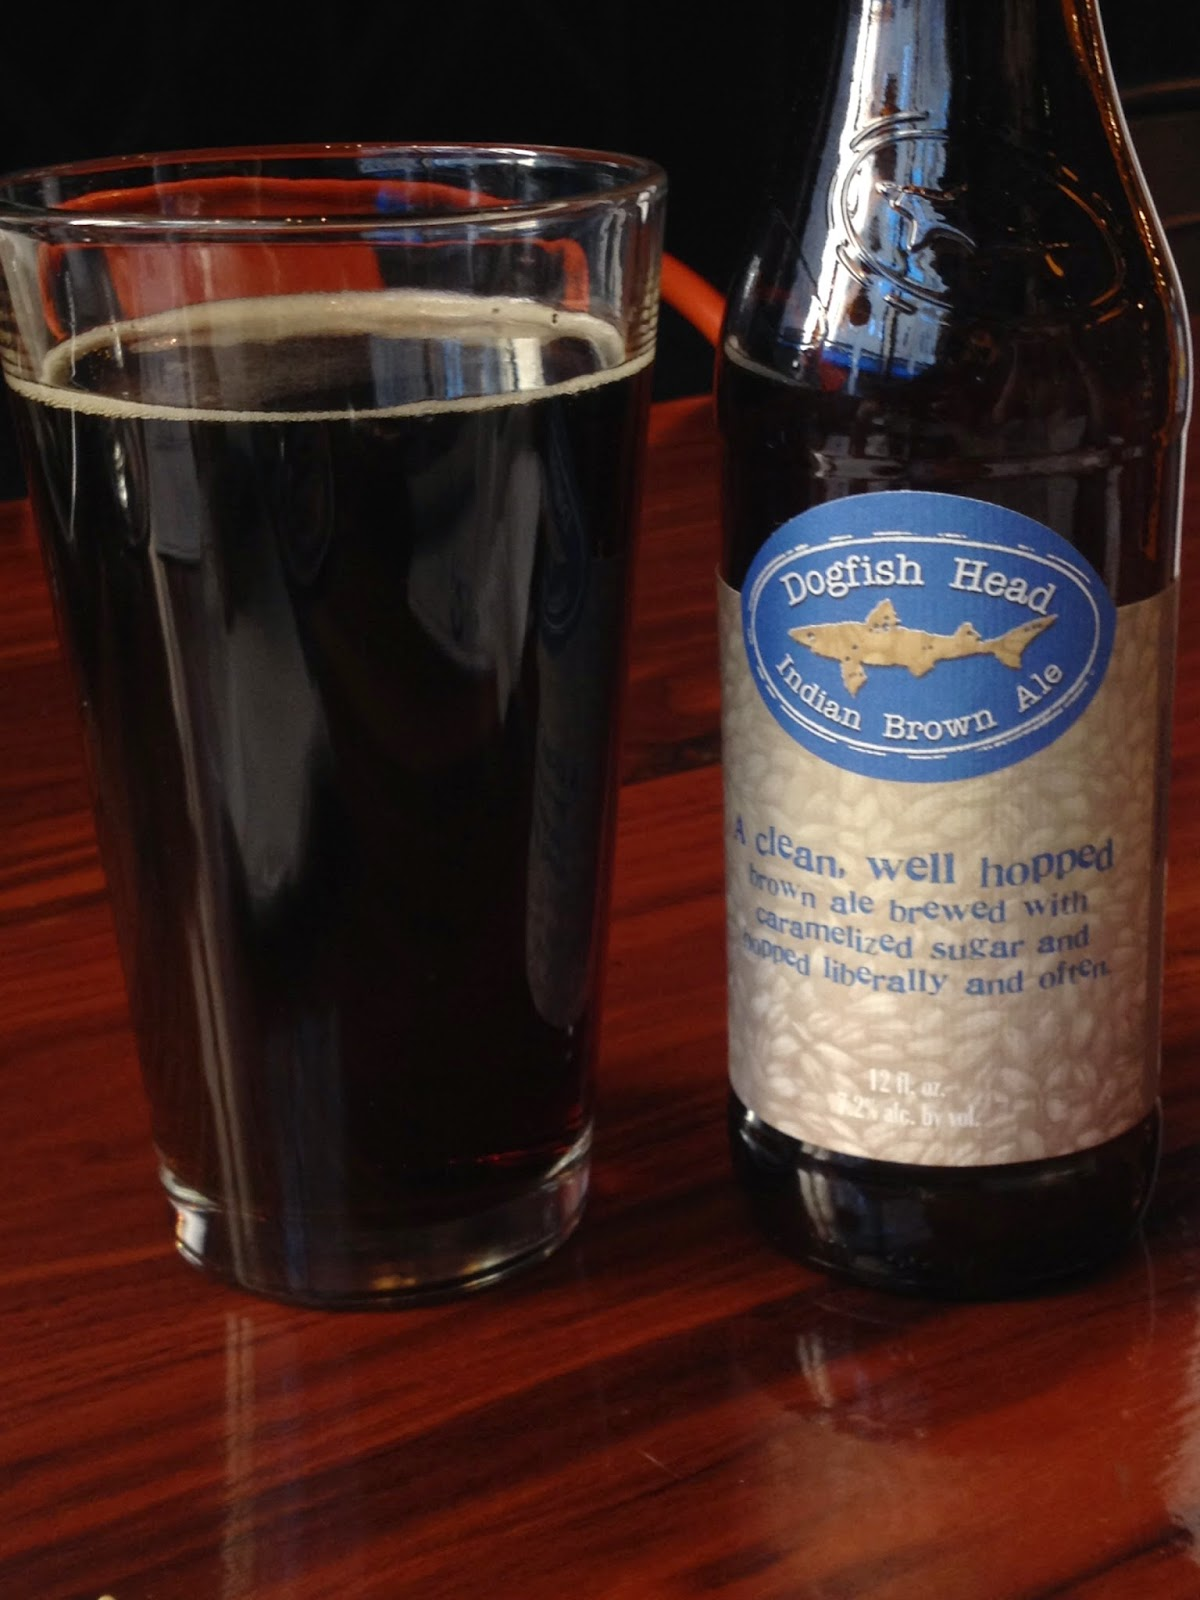 Indian Brown Ale by Dogfish Head Brewery